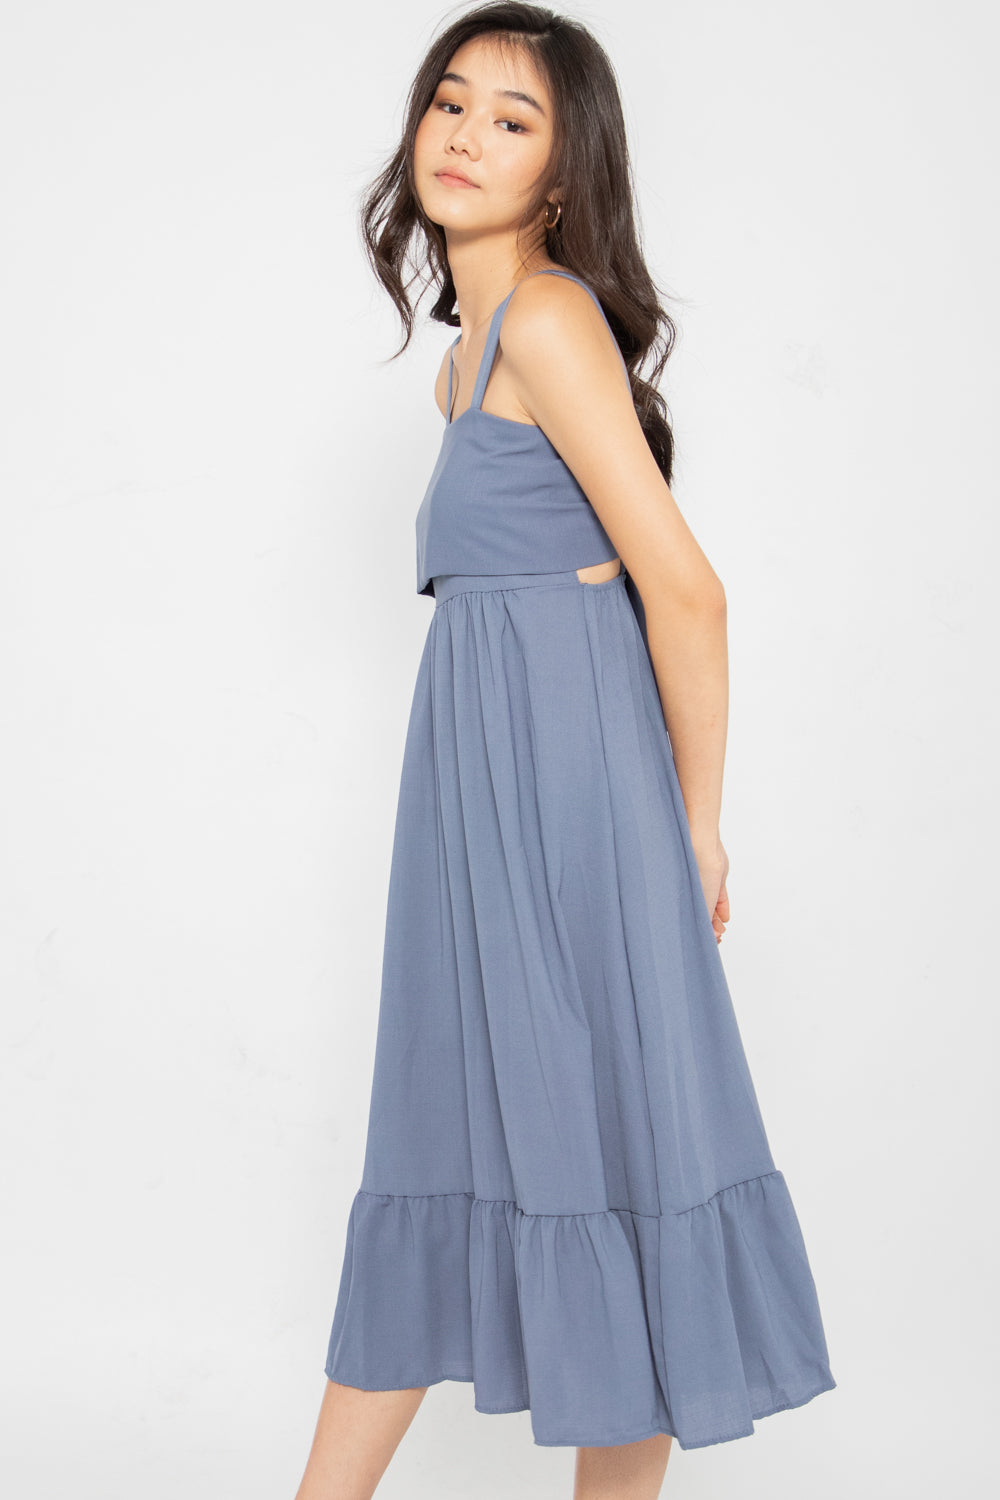 Kyleigh Tie Back Ruffle Dress in Slate Blue - Three One Duo